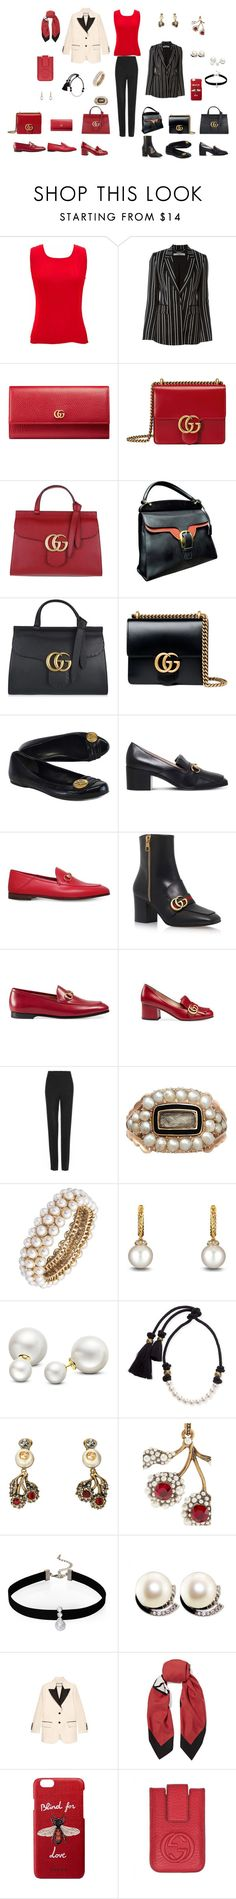 """Gucci Black & a touch of red"" by srothery on Polyvore featuring jon & anna, Givenchy, Gucci, Anne Klein, David Yurman, Allurez, Lanvin and Loren Olivia"